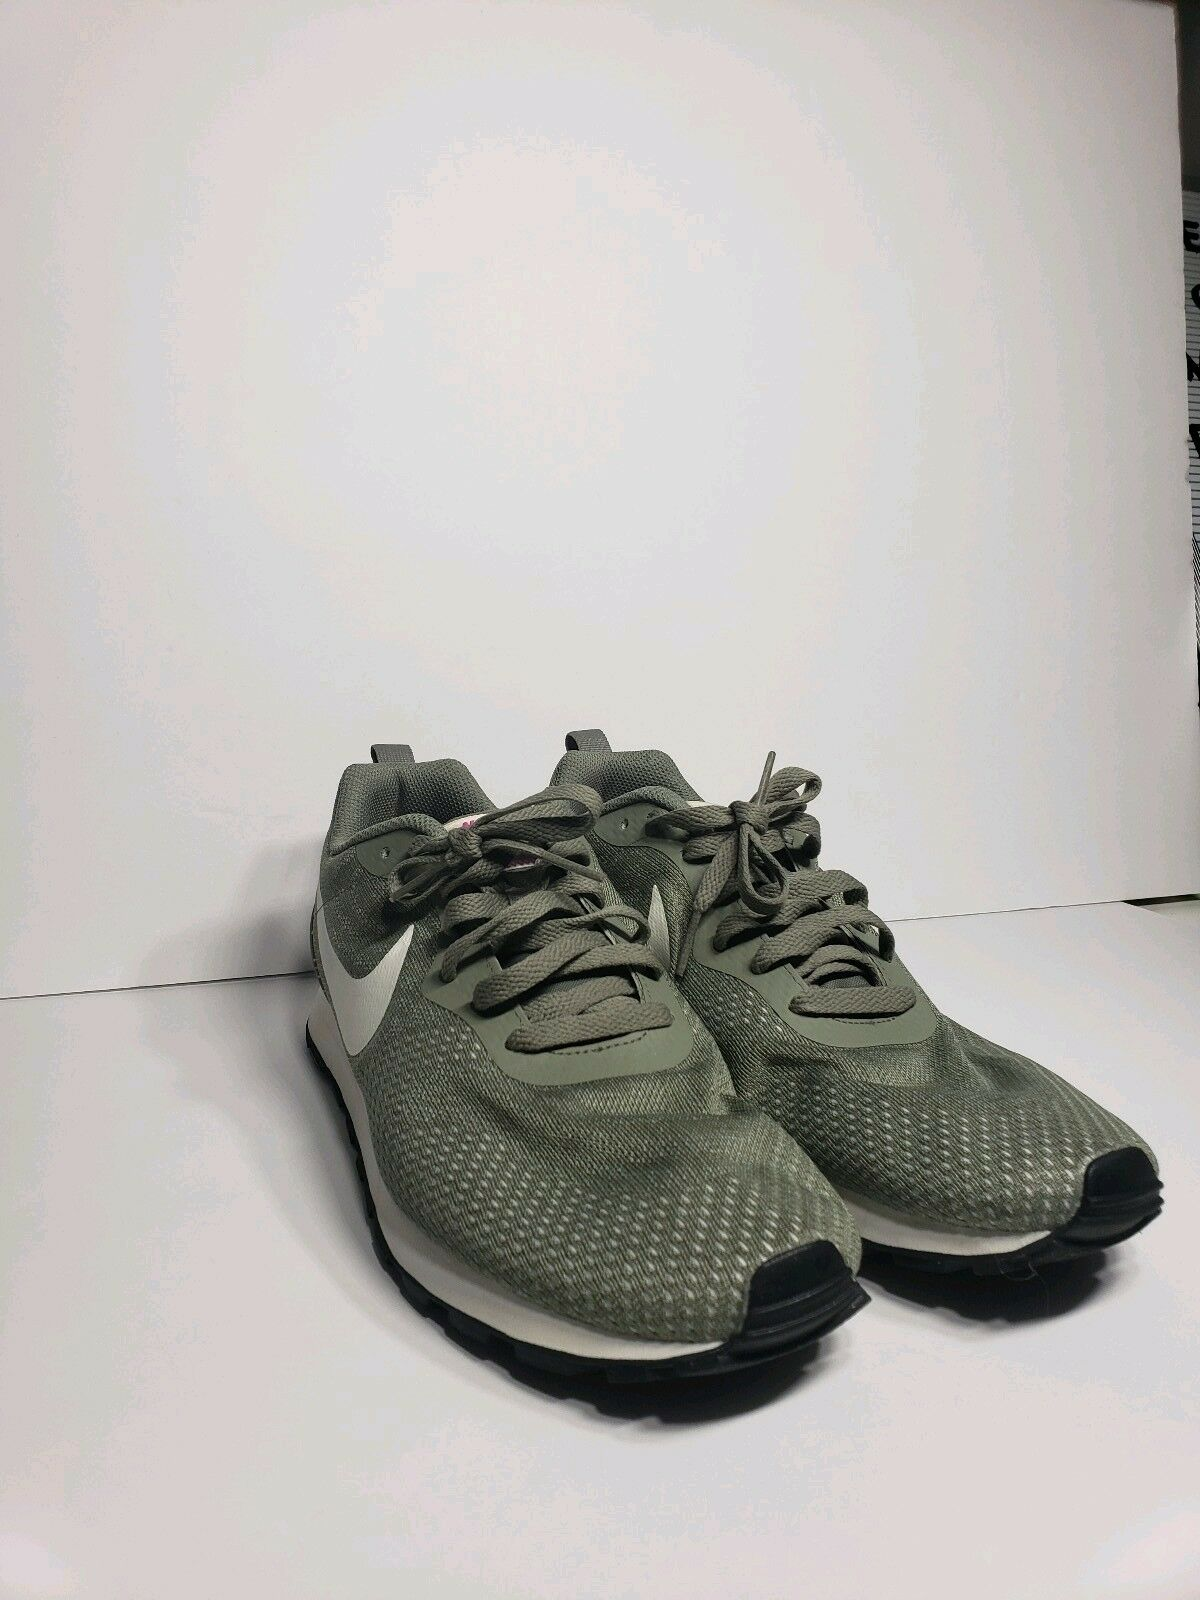 NIKE SIZE MD RUNNER OLIVE MENS SIZE NIKE 9 WOMENS SIZE 11 10310c